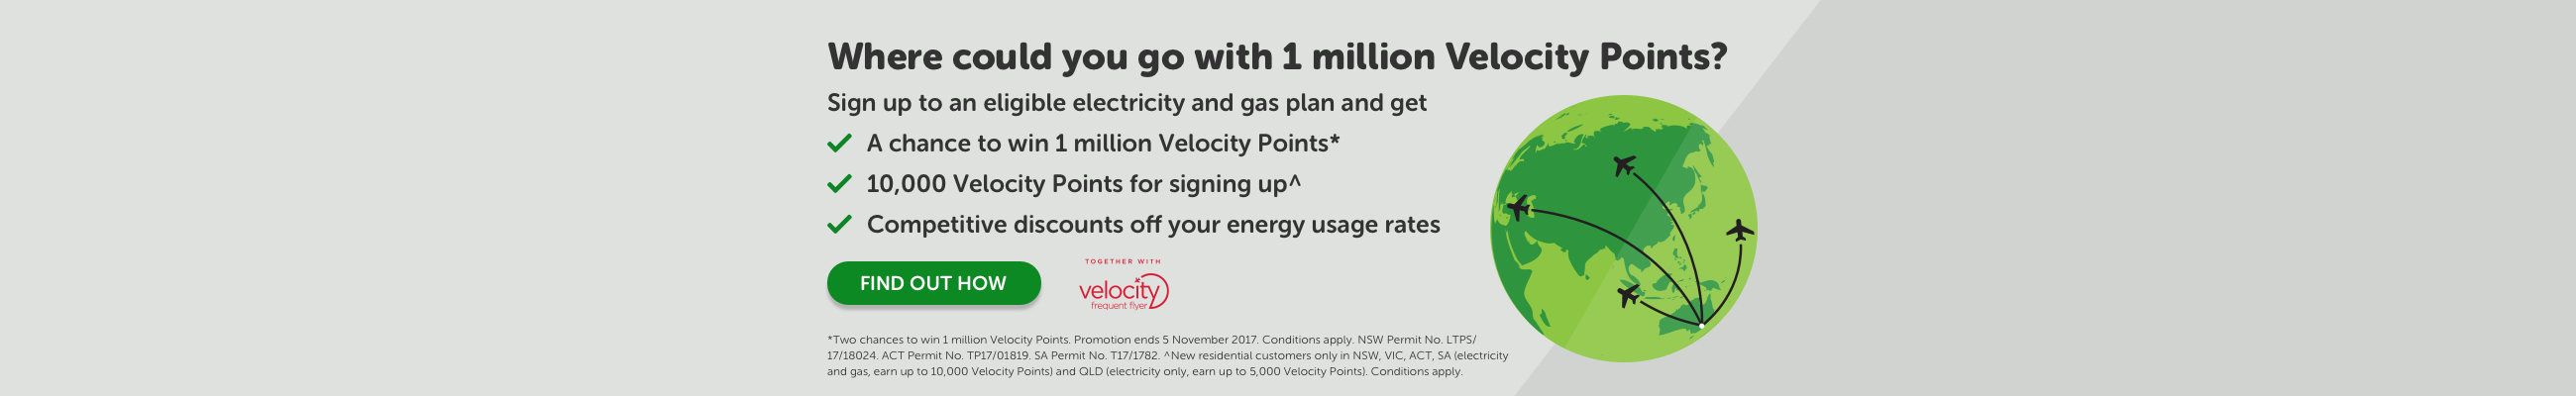 Chance to win 1 million Velocity Points* each week OR Where could a million Velocity Points take you?